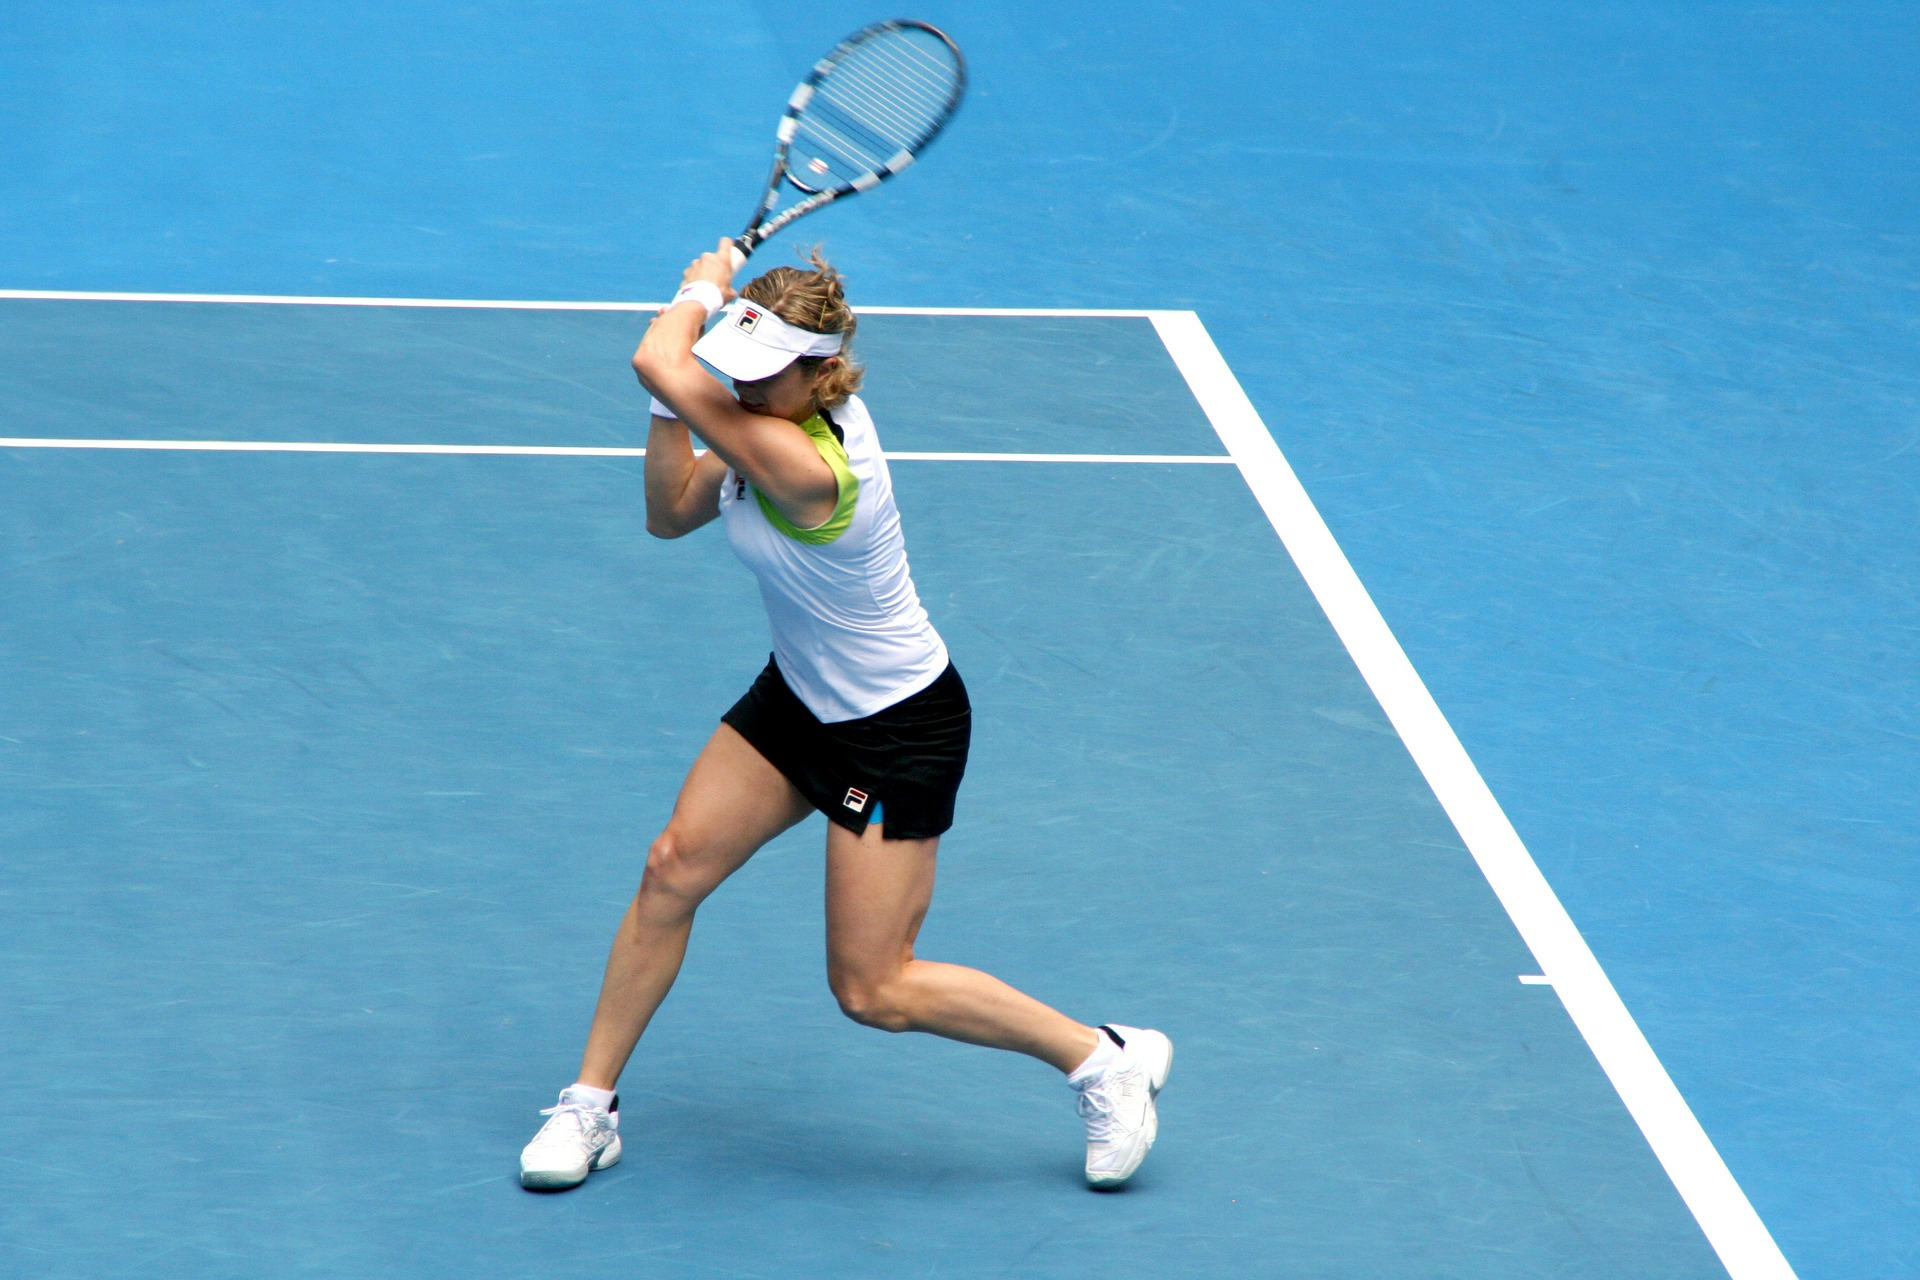 double handed backhand